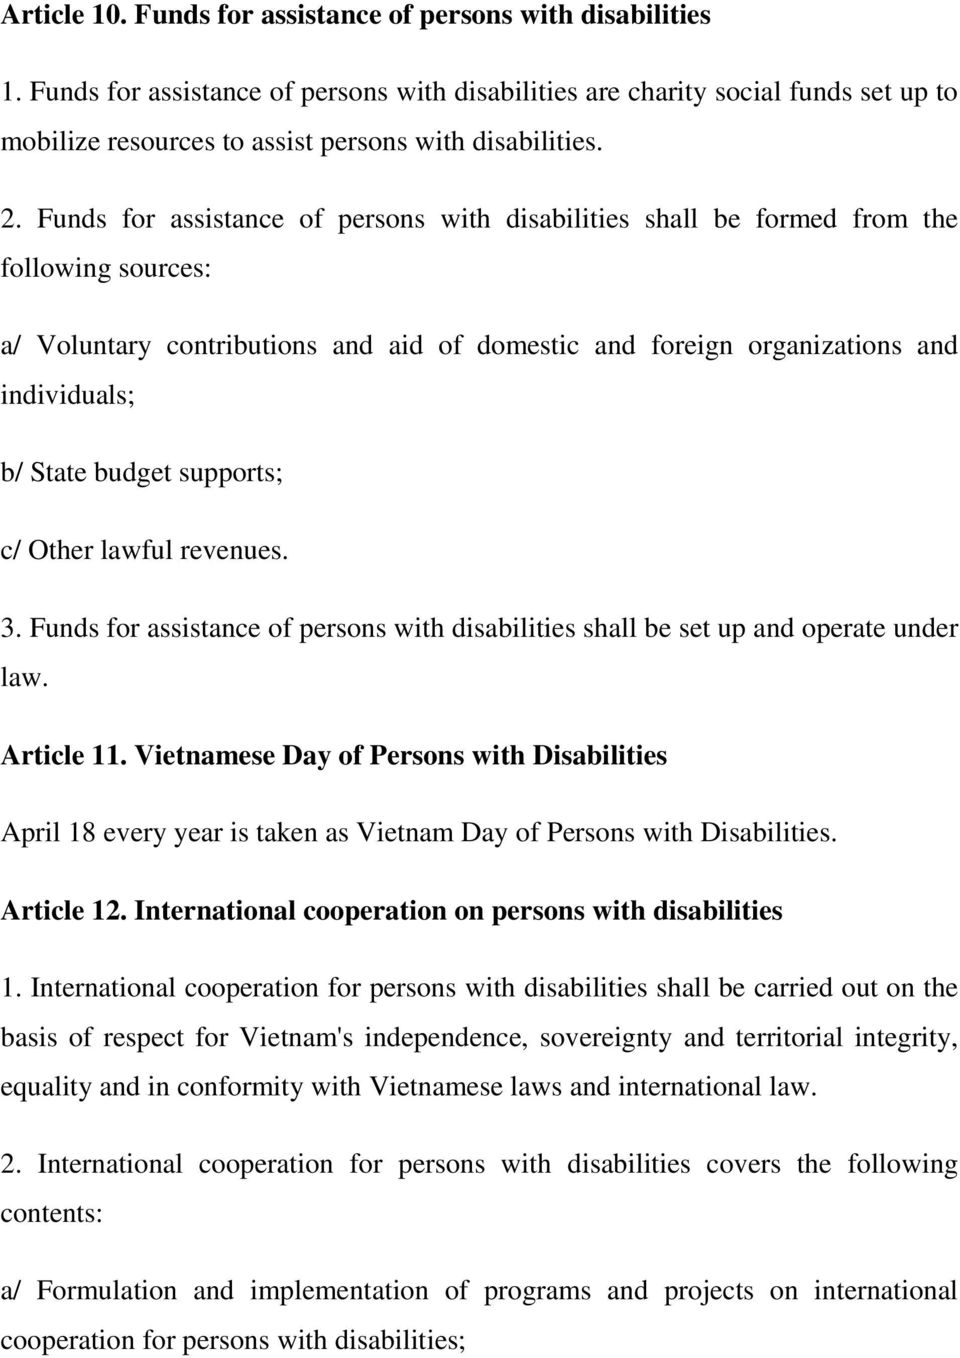 Funds for assistance of persons with disabilities shall be formed from the following sources: a/ Voluntary contributions and aid of domestic and foreign organizations and individuals; b/ State budget